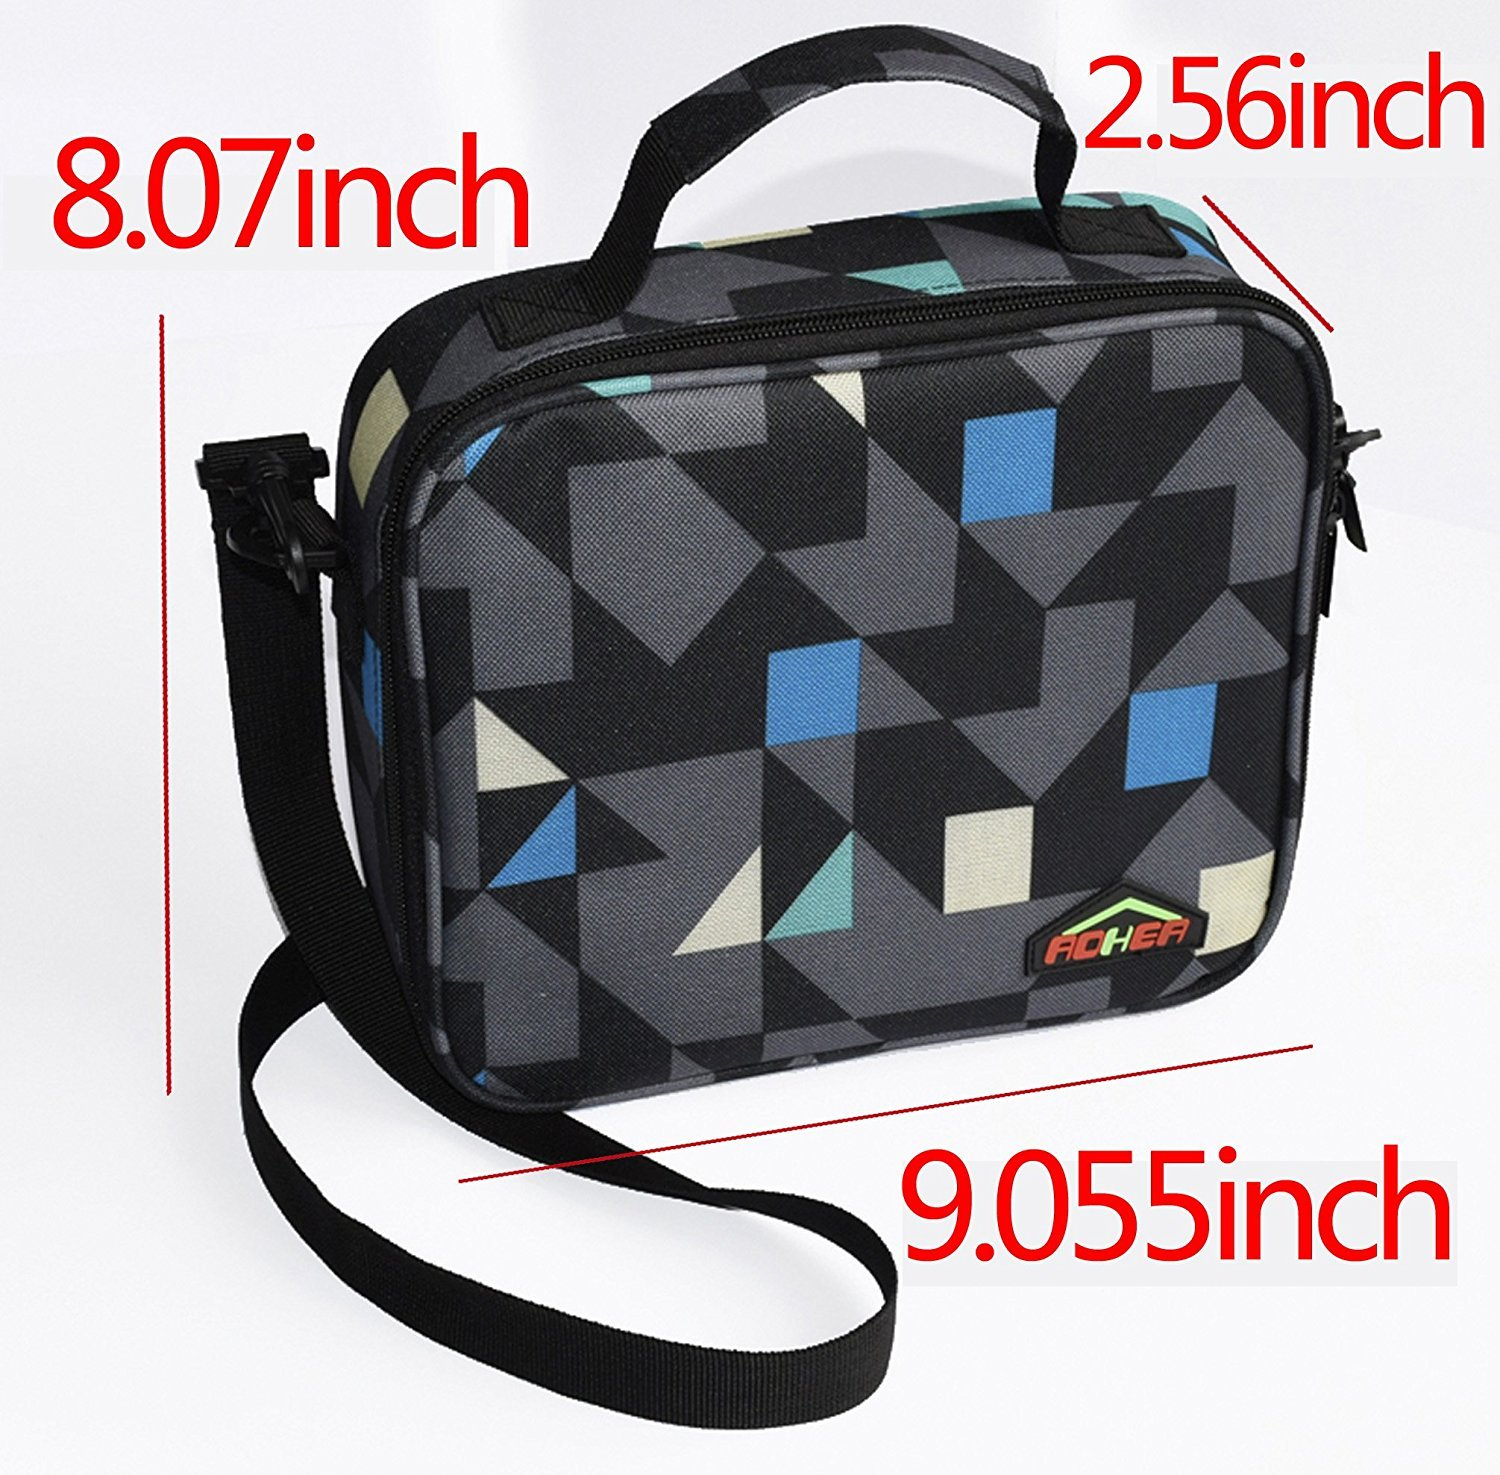 Lunch Bag Insulated Food Travel Tote Bags with Mesh Pocket Diamond Oxford Bento Box Cool Bag School Food Bag Ideal for Kids,Men and Women AOHEA